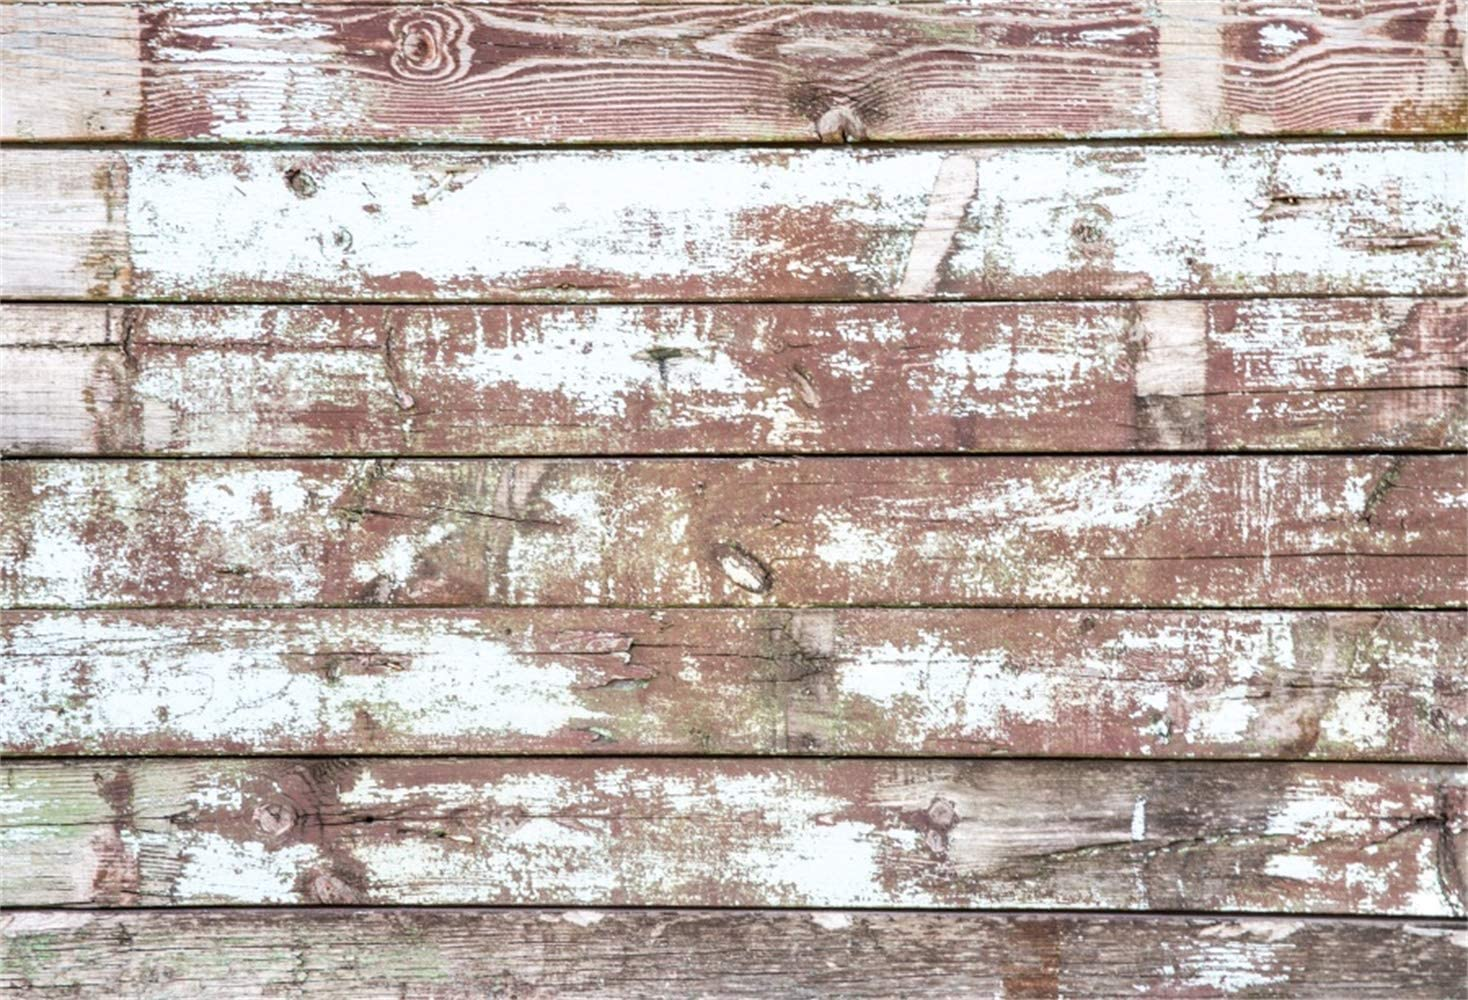 Polyester 8x6ft Grunge Faded Lateral-Cut Wood Plank Photography Background Rustic Weathered Wooden Board Backdrop Children Adult Pets Artistic Portrait Shoot Countryside